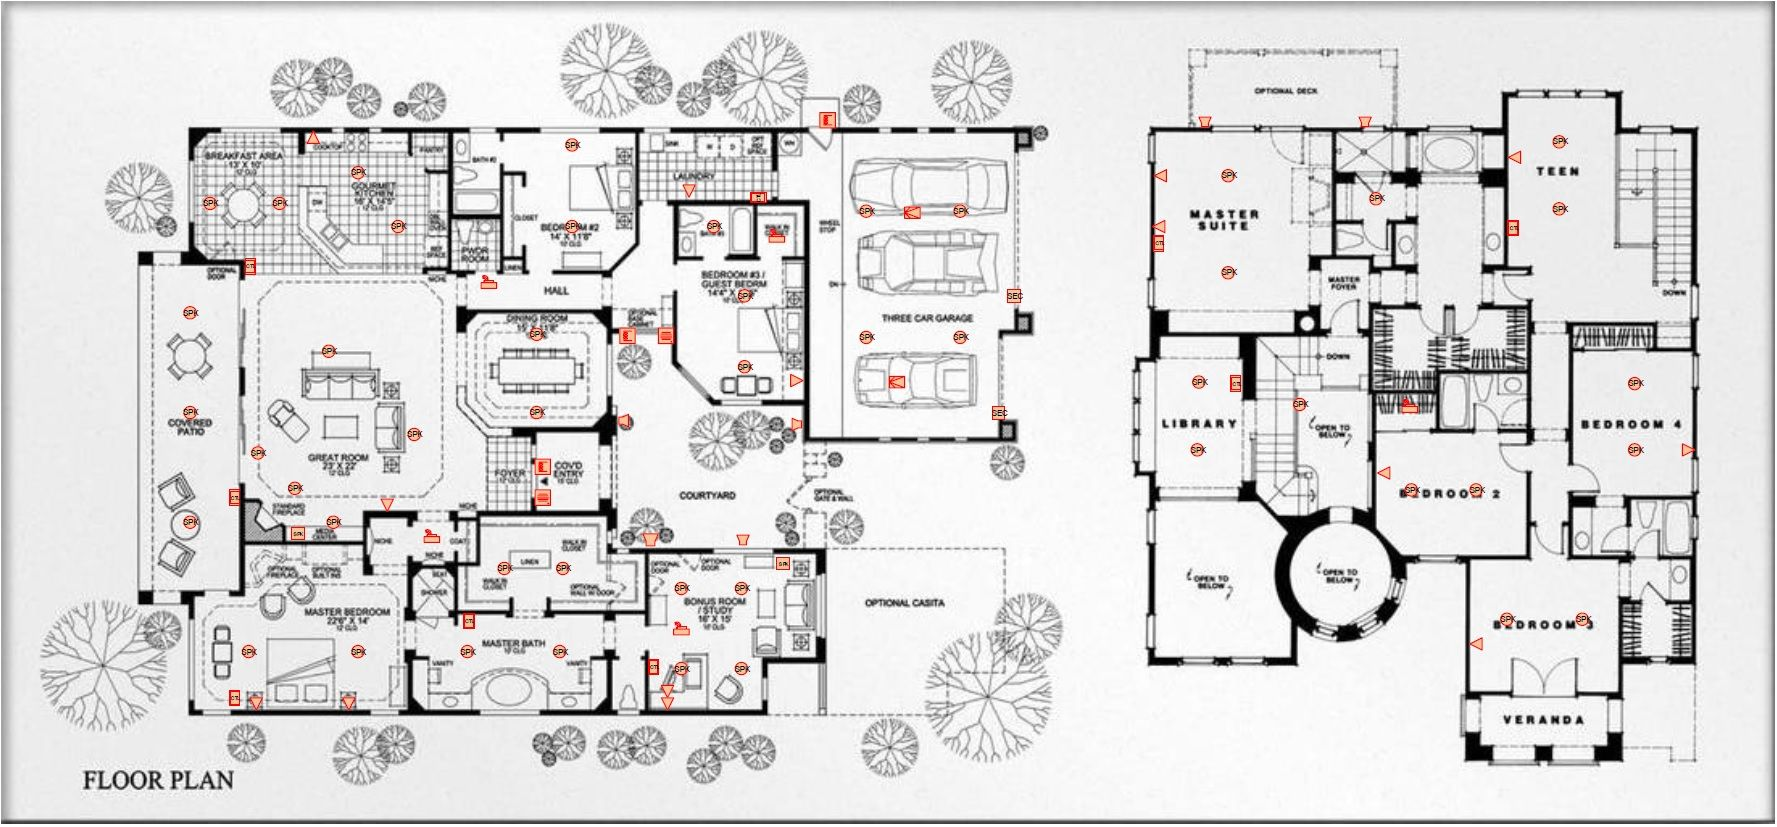 The Best 24 Smart Home Wiring Diagram , https://bacamajalah.com/the-best-24- smart-home-wiring-diagram/ , #diagr… | Home electrical wiring, House wiring,  Smart homePinterest